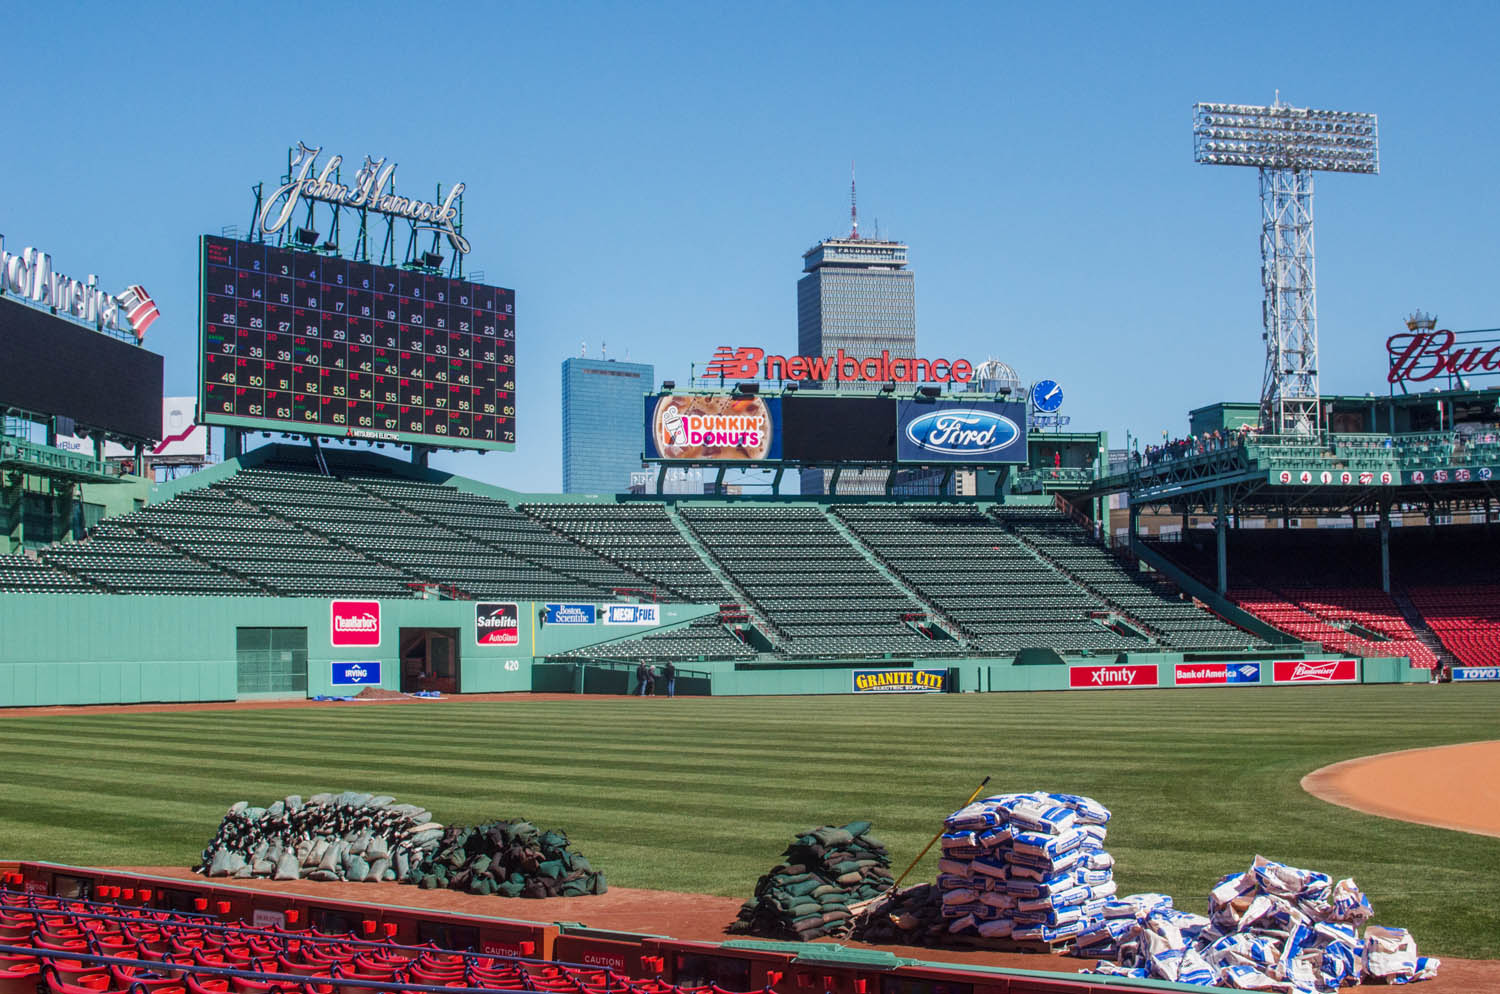 Preparations were underway last week at Fenway Park for Monday's season opener, when the Red Sox host the Pittsburgh Pirates. (Sharon Brody/WBUR)